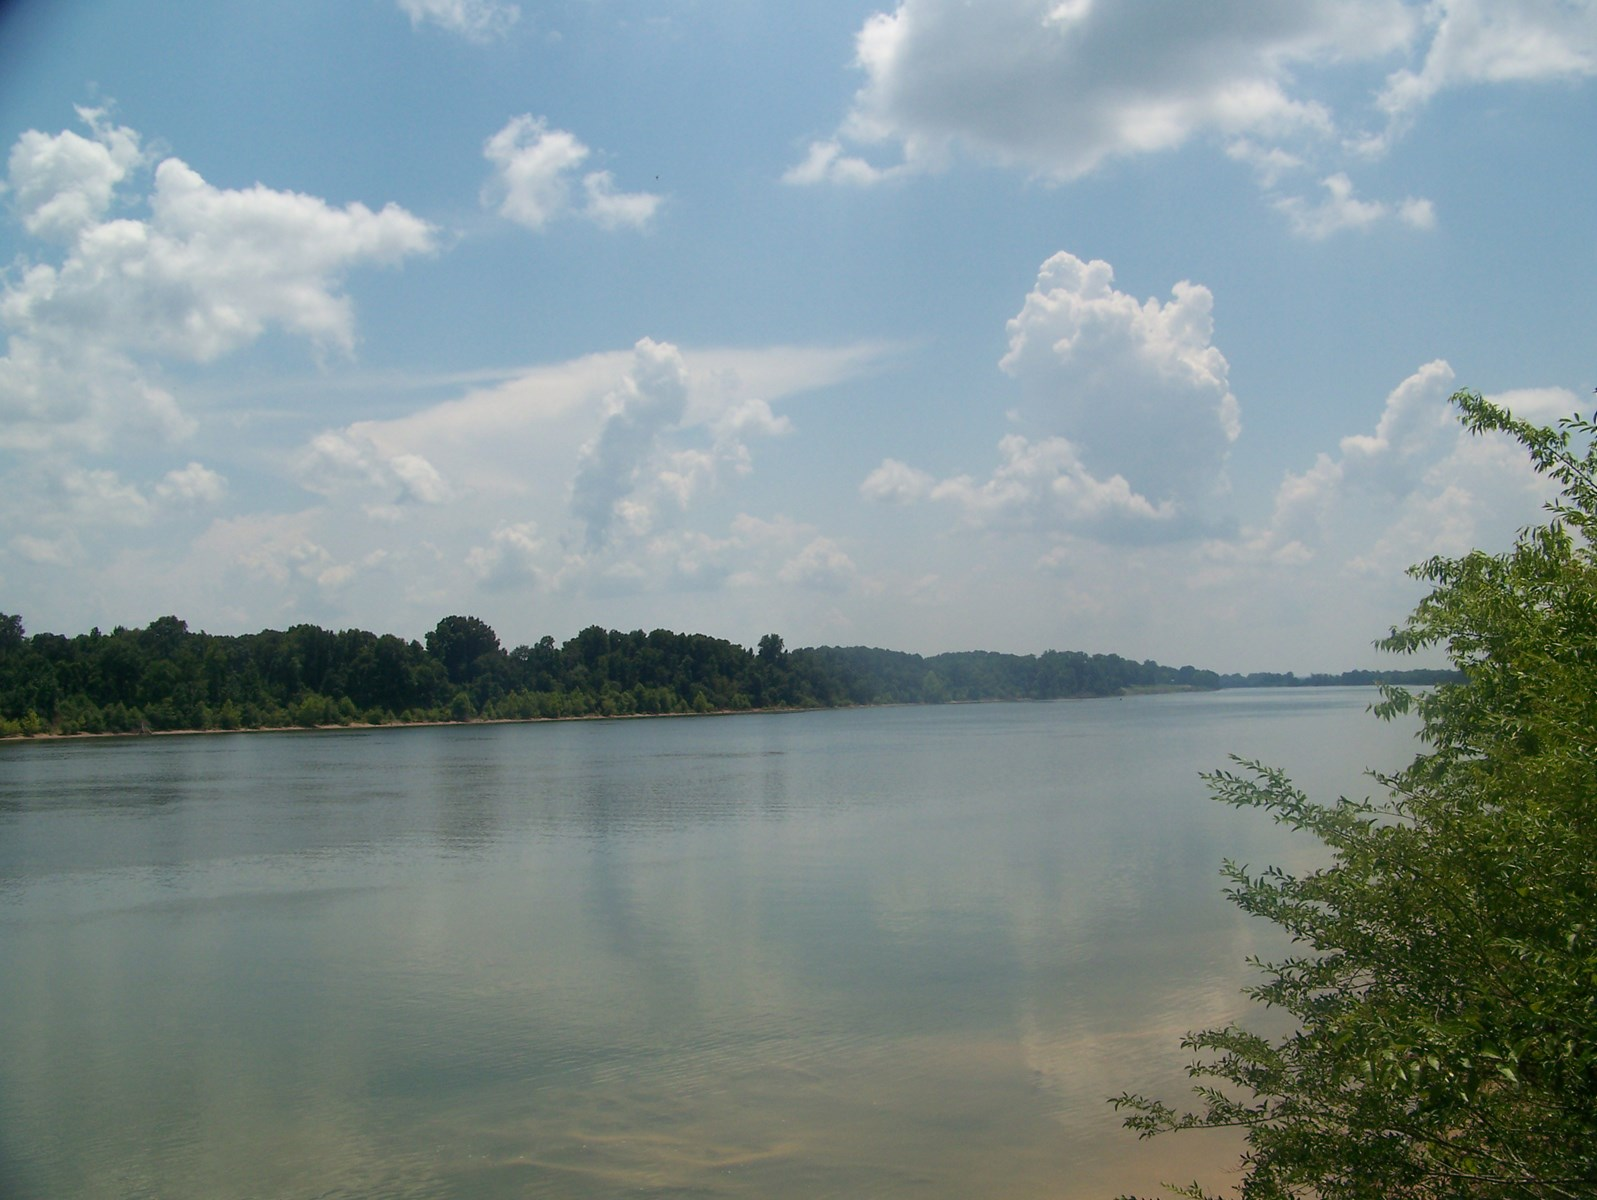 TENNESSEE RIVER FRONT LAND IN HARDIN COUNTY